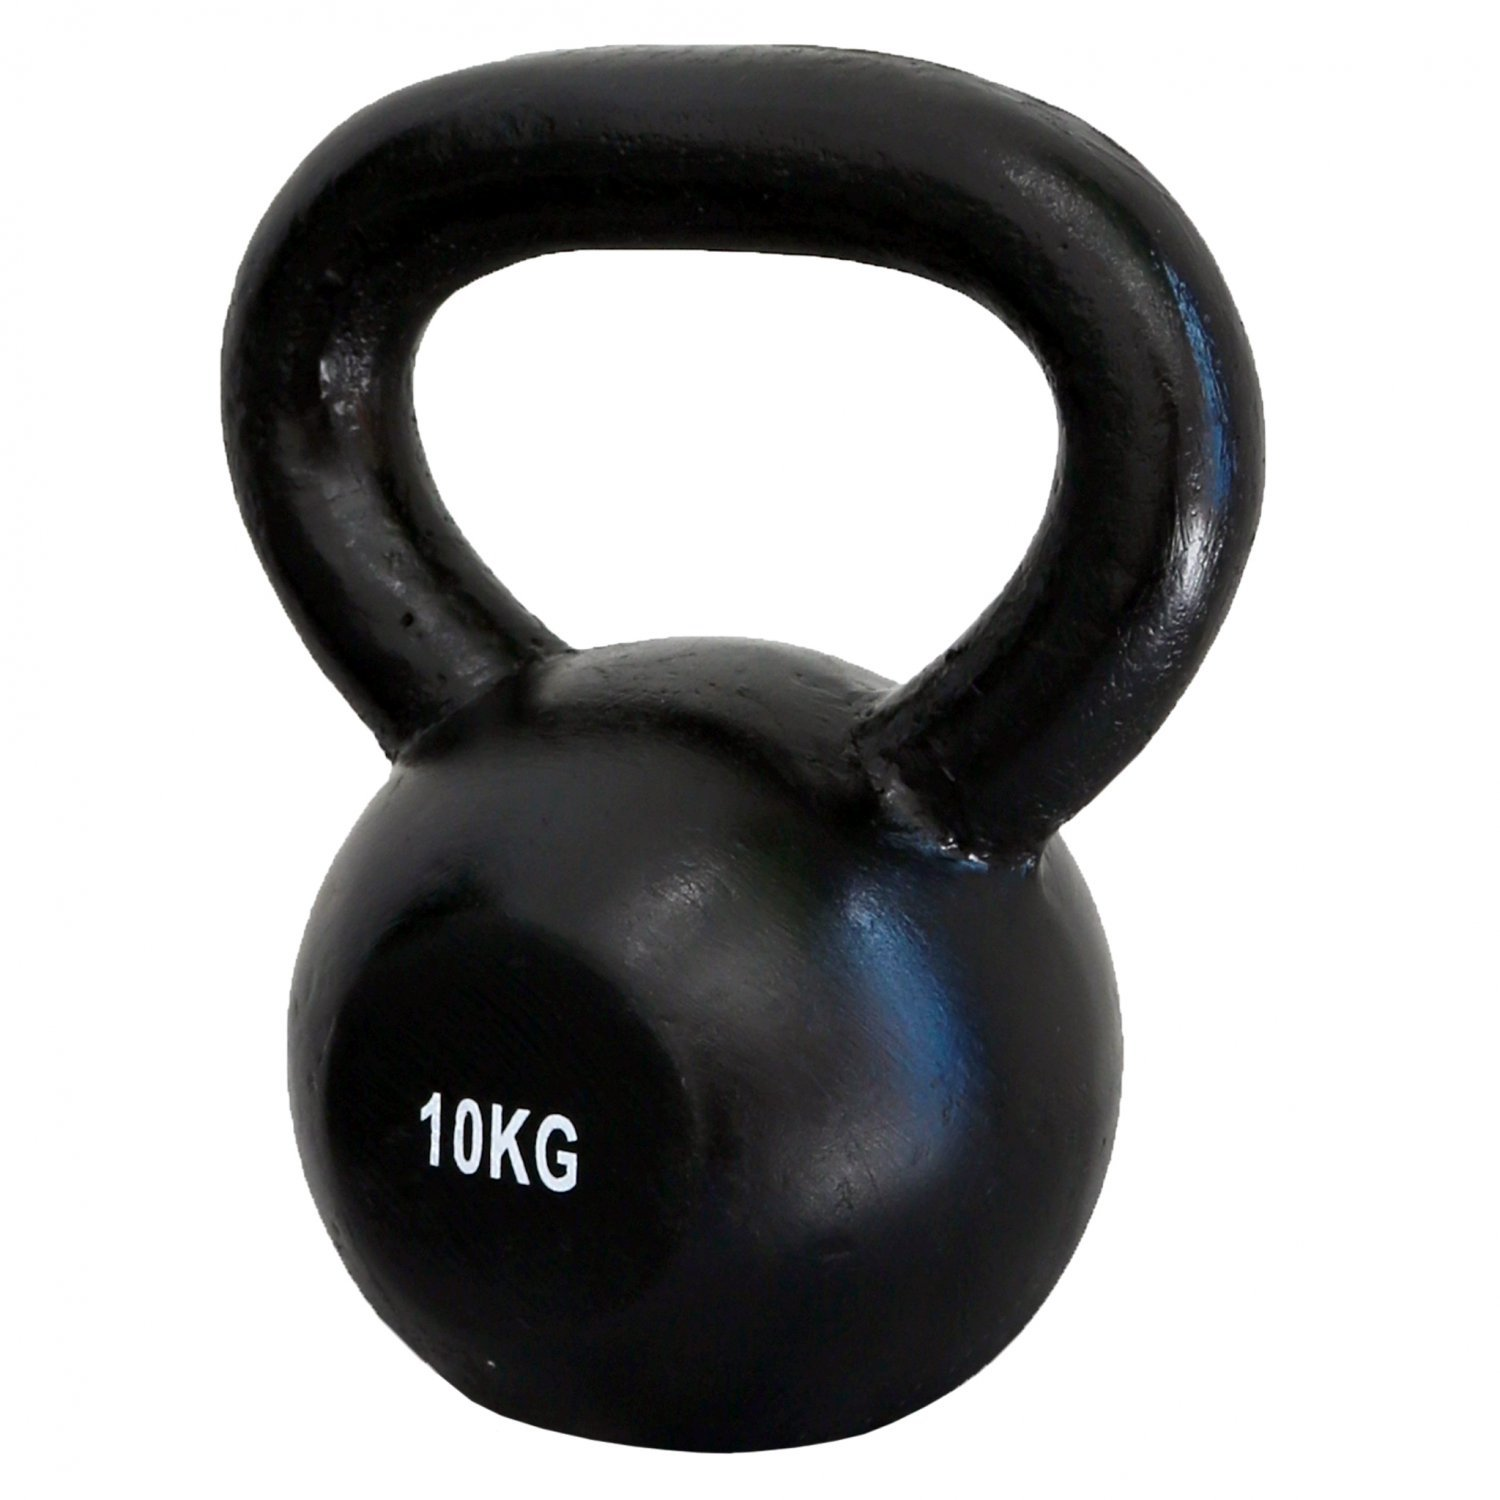 10kg Cast Iron Kettlebell Weight Training Fitness Workout